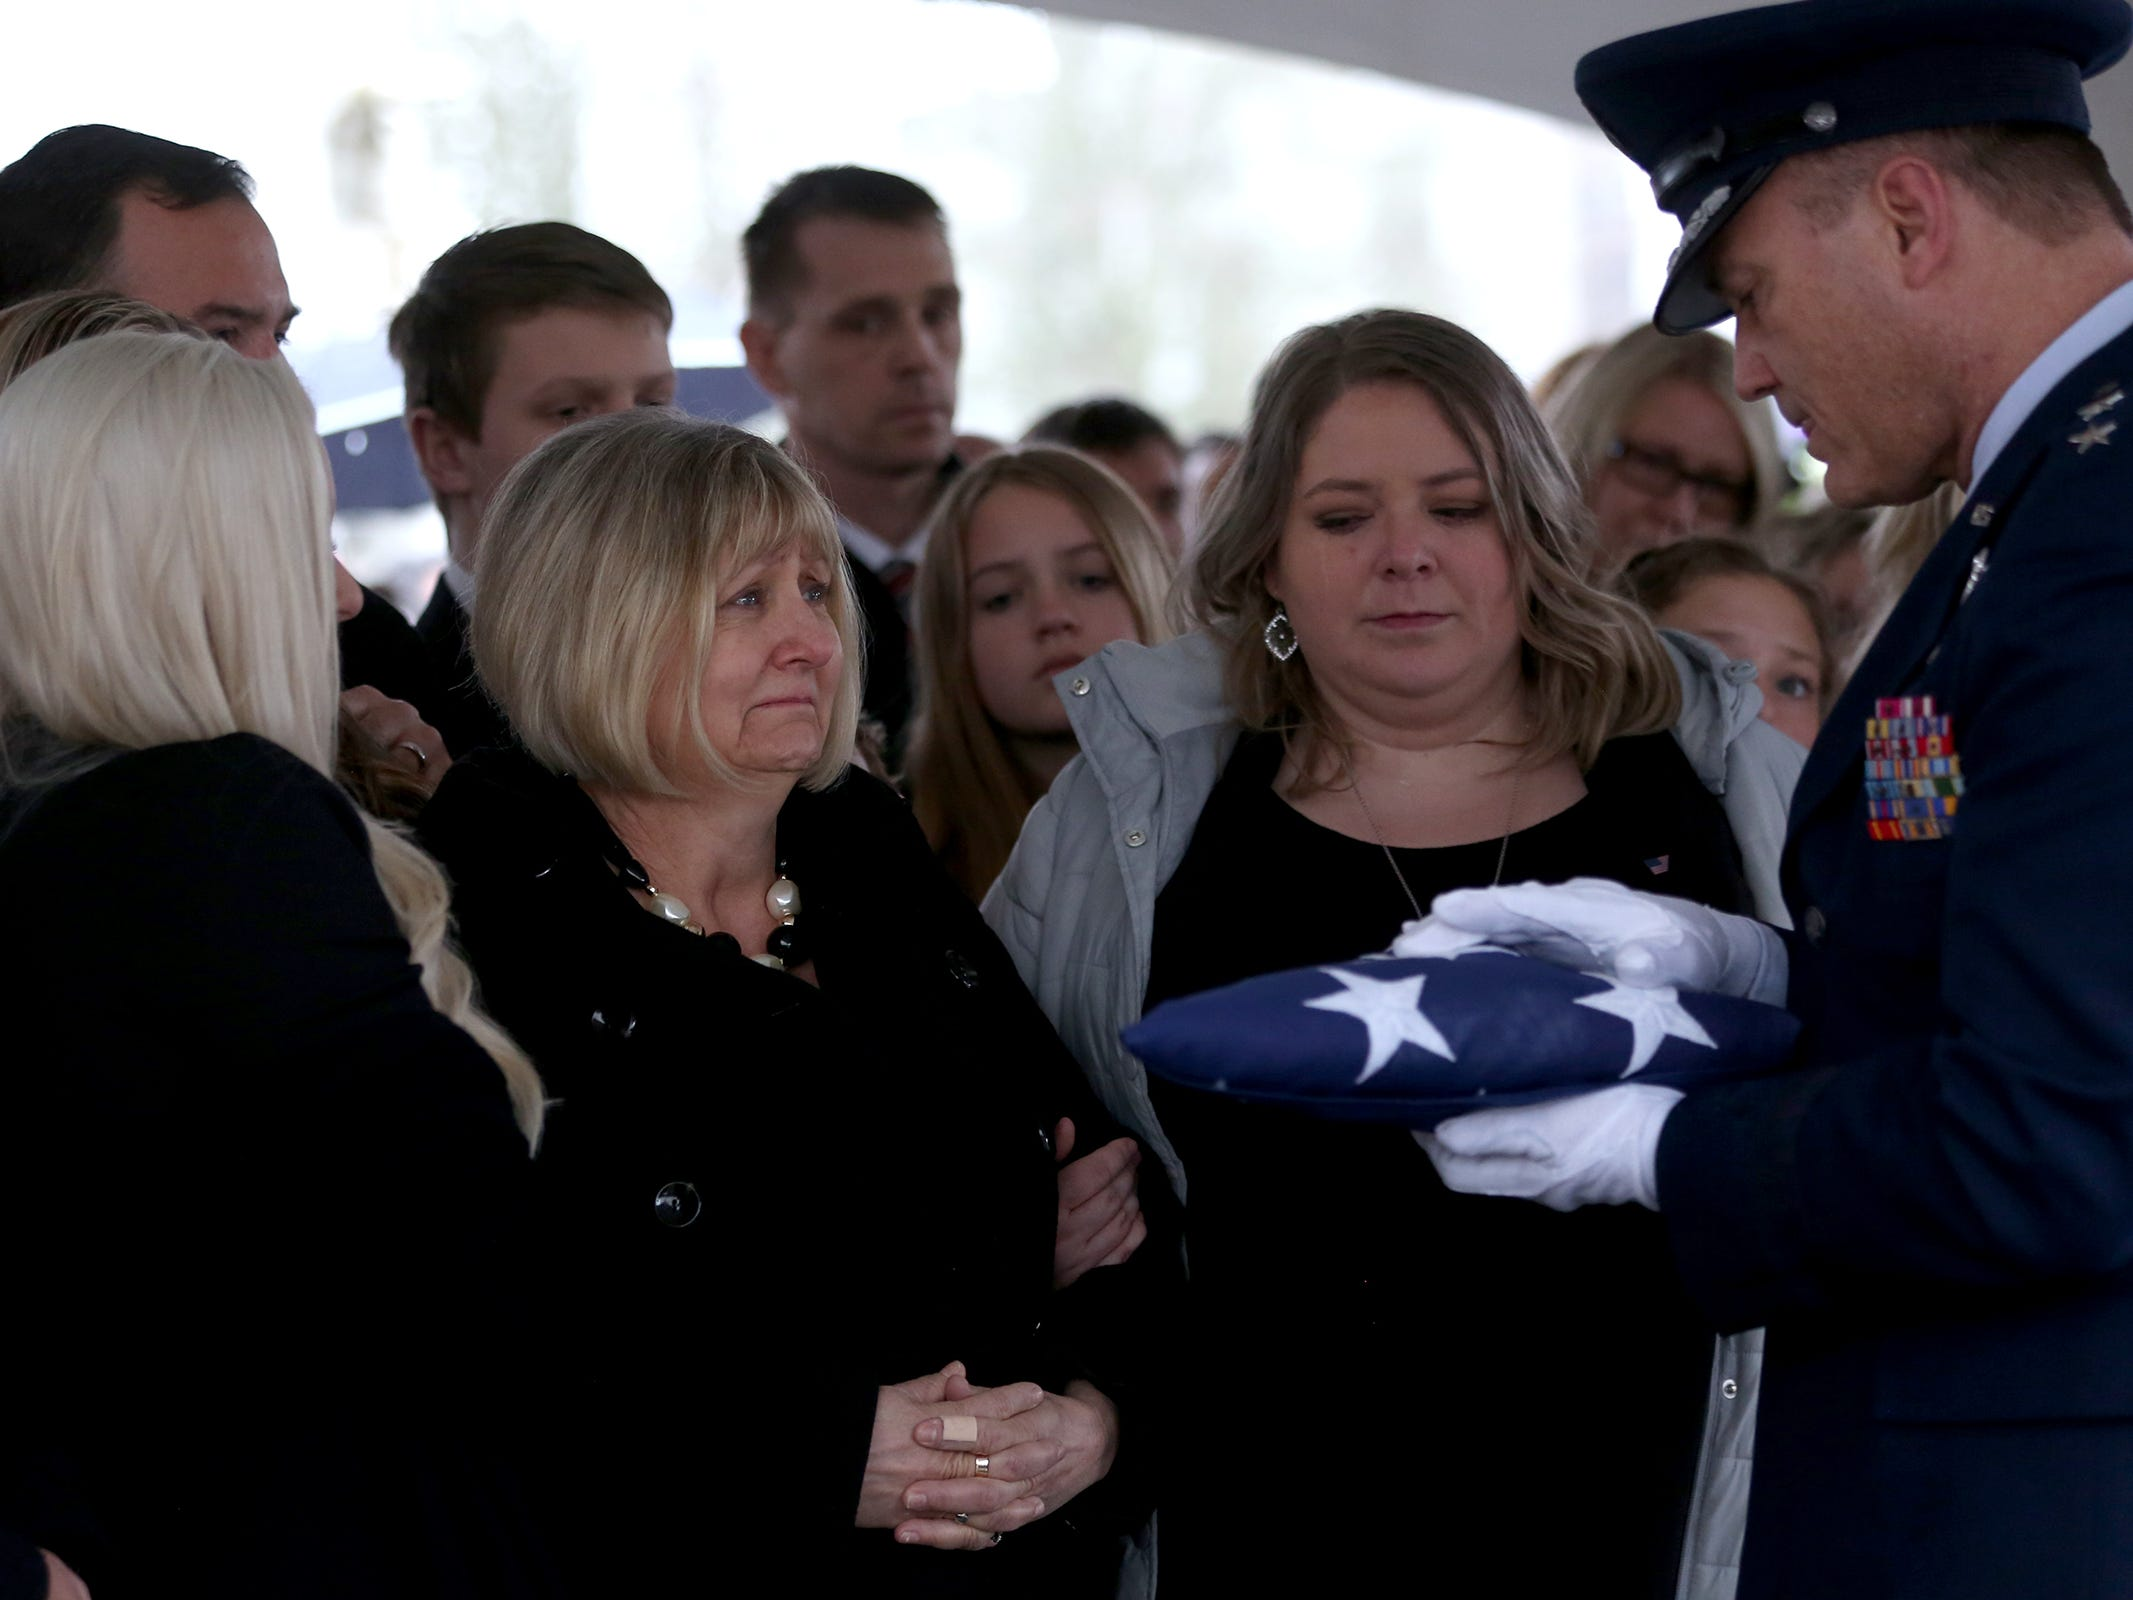 Cathy Richardson is presented with the flag following the state funeral for Secretary of State Dennis Richardson at the Oregon State Capitol in Salem on Wednesday, March 6, 2019.